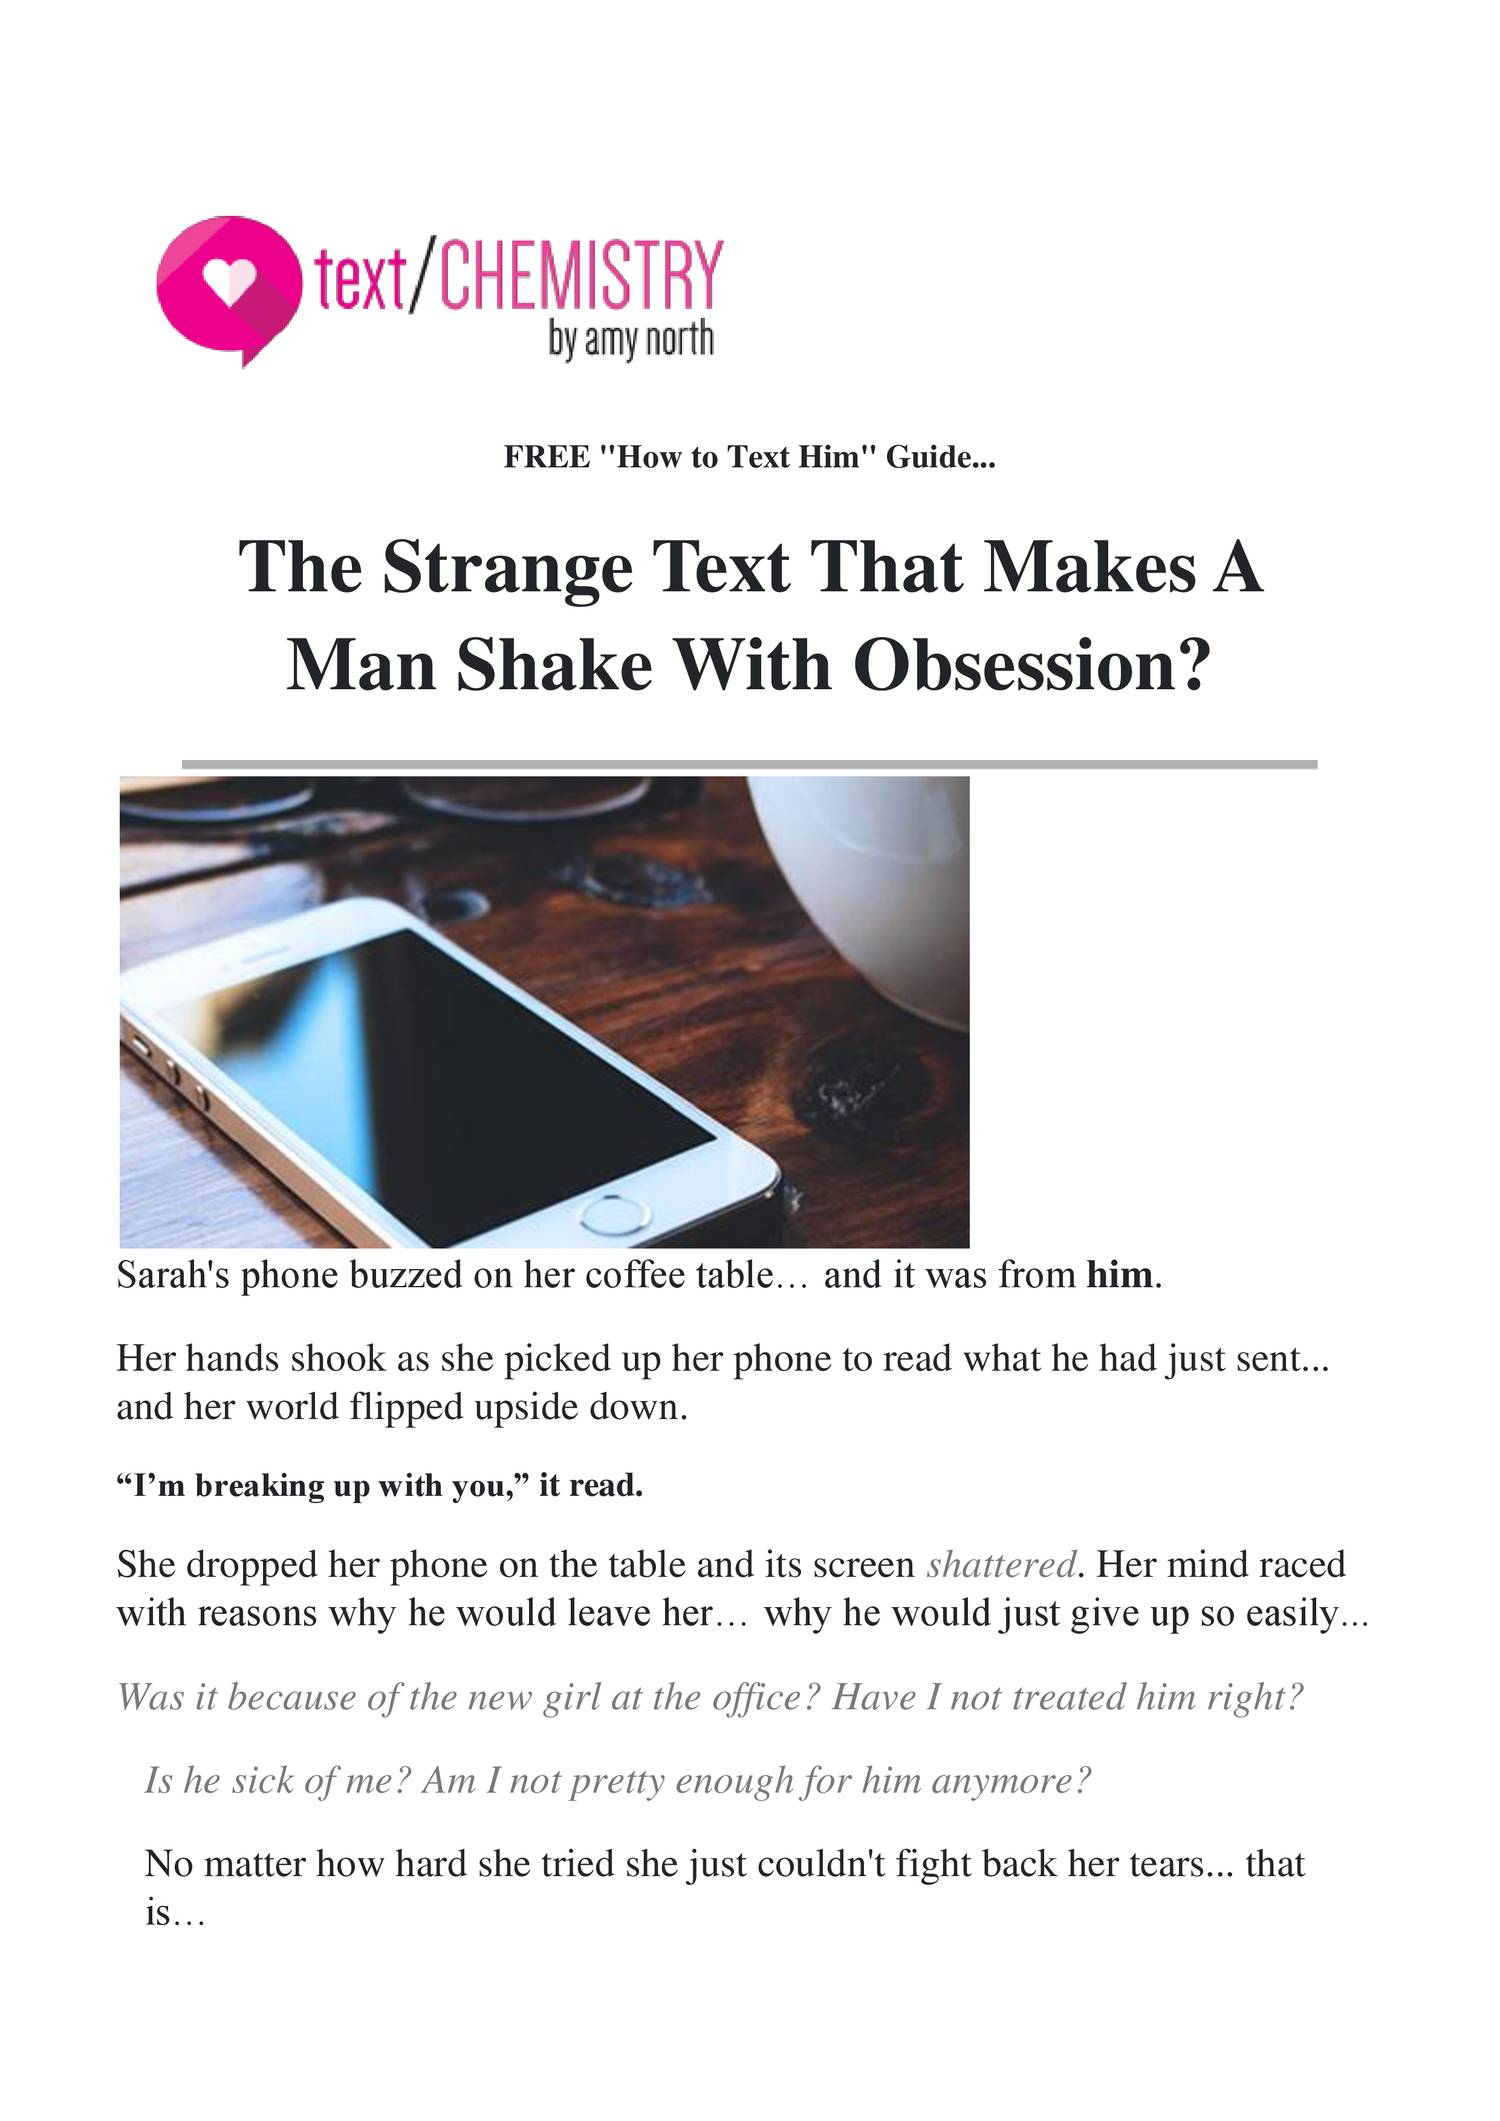 Text Chemistry | Texts That Get Guy's Attention pdf | DocDroid